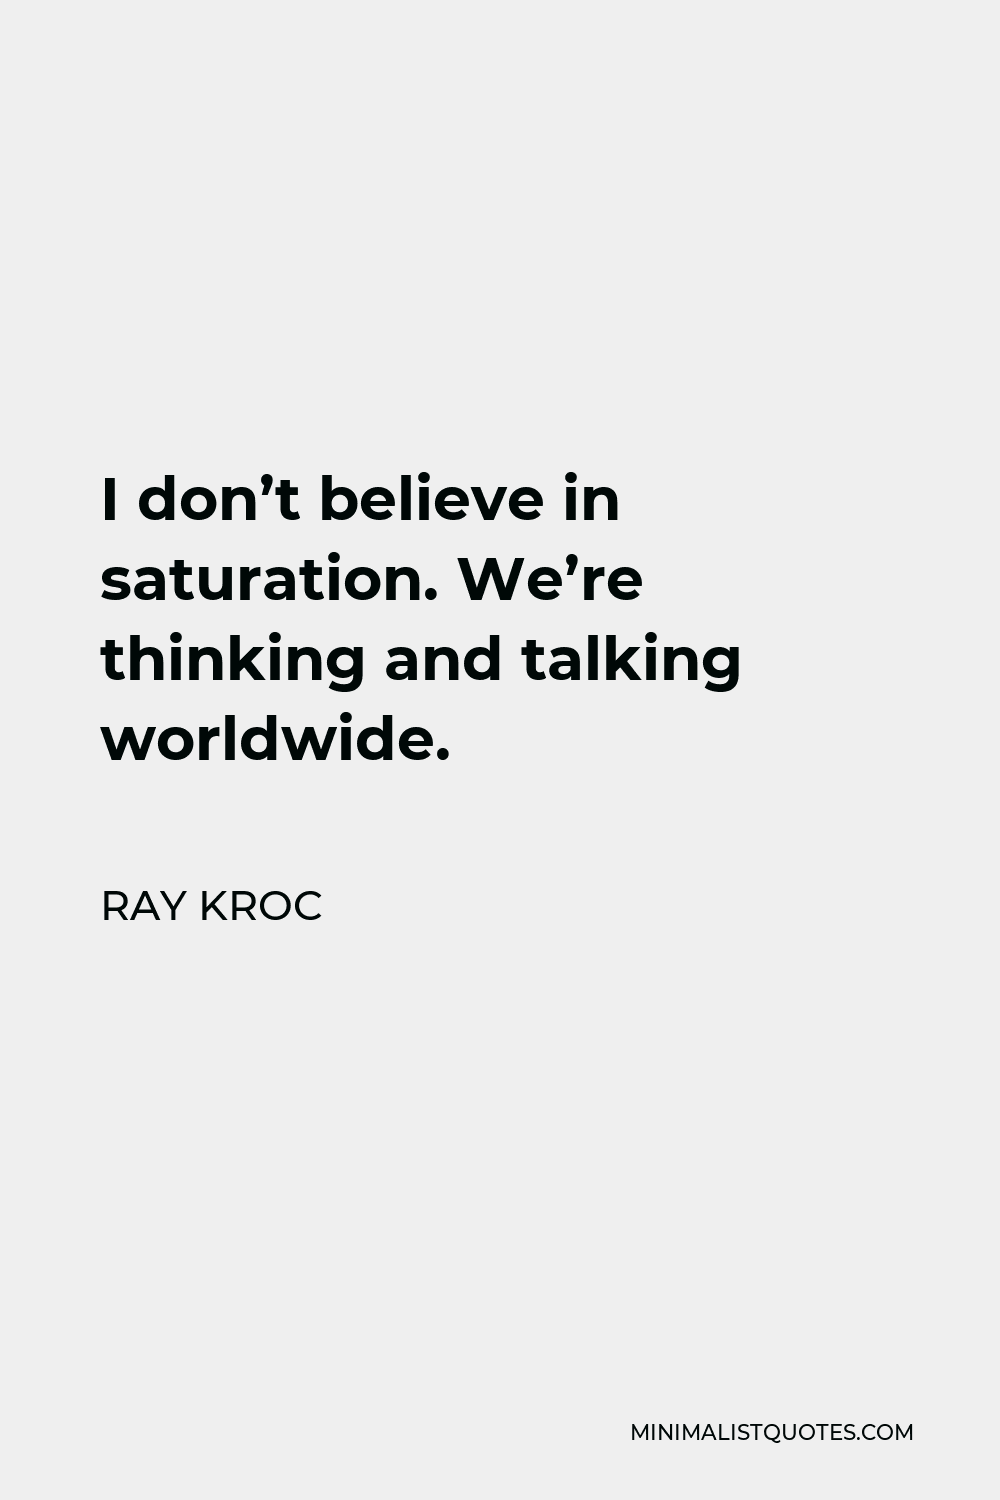 Ray Kroc Quote - I don't believe in saturation. We're thinking and talking worldwide.